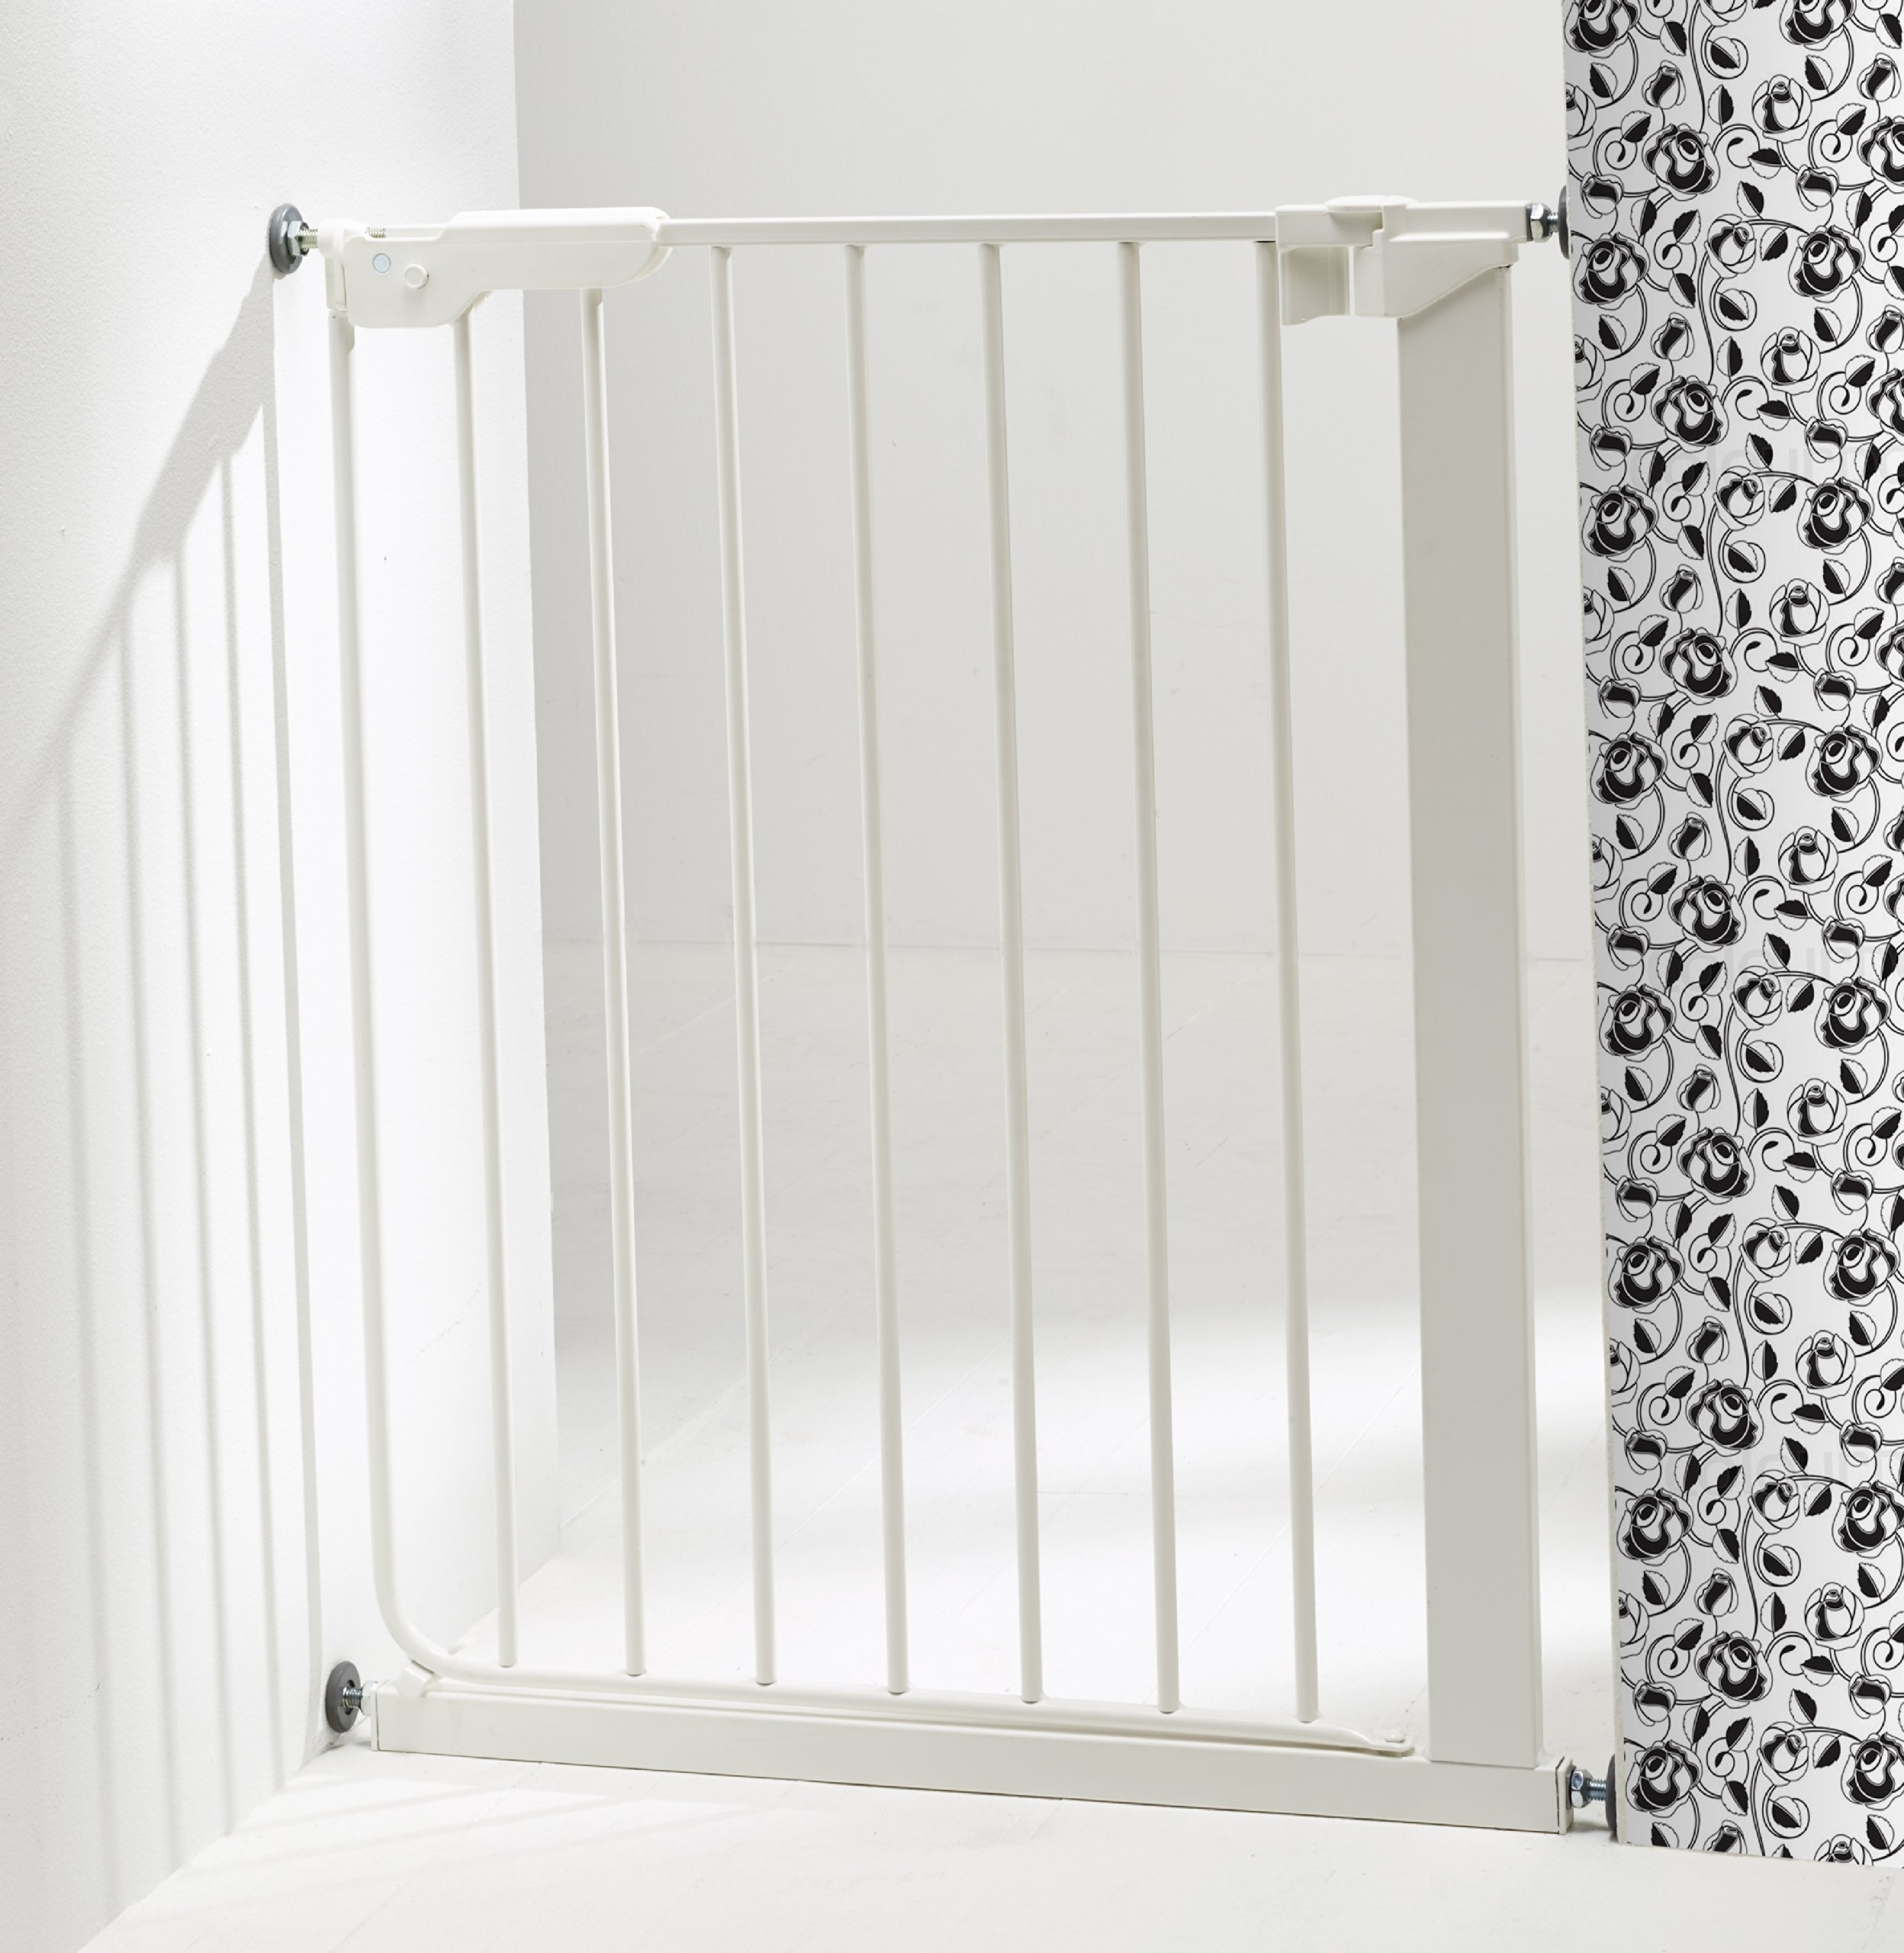 BabyDan 51994-2400-27-88 Slim Fit Stair Gate White  Baby Dan slim fit safety gate is designed for extra narrow openings The pressure fit make this super easy to install It offers a one hand 2 way opening for easy access between rooms 2